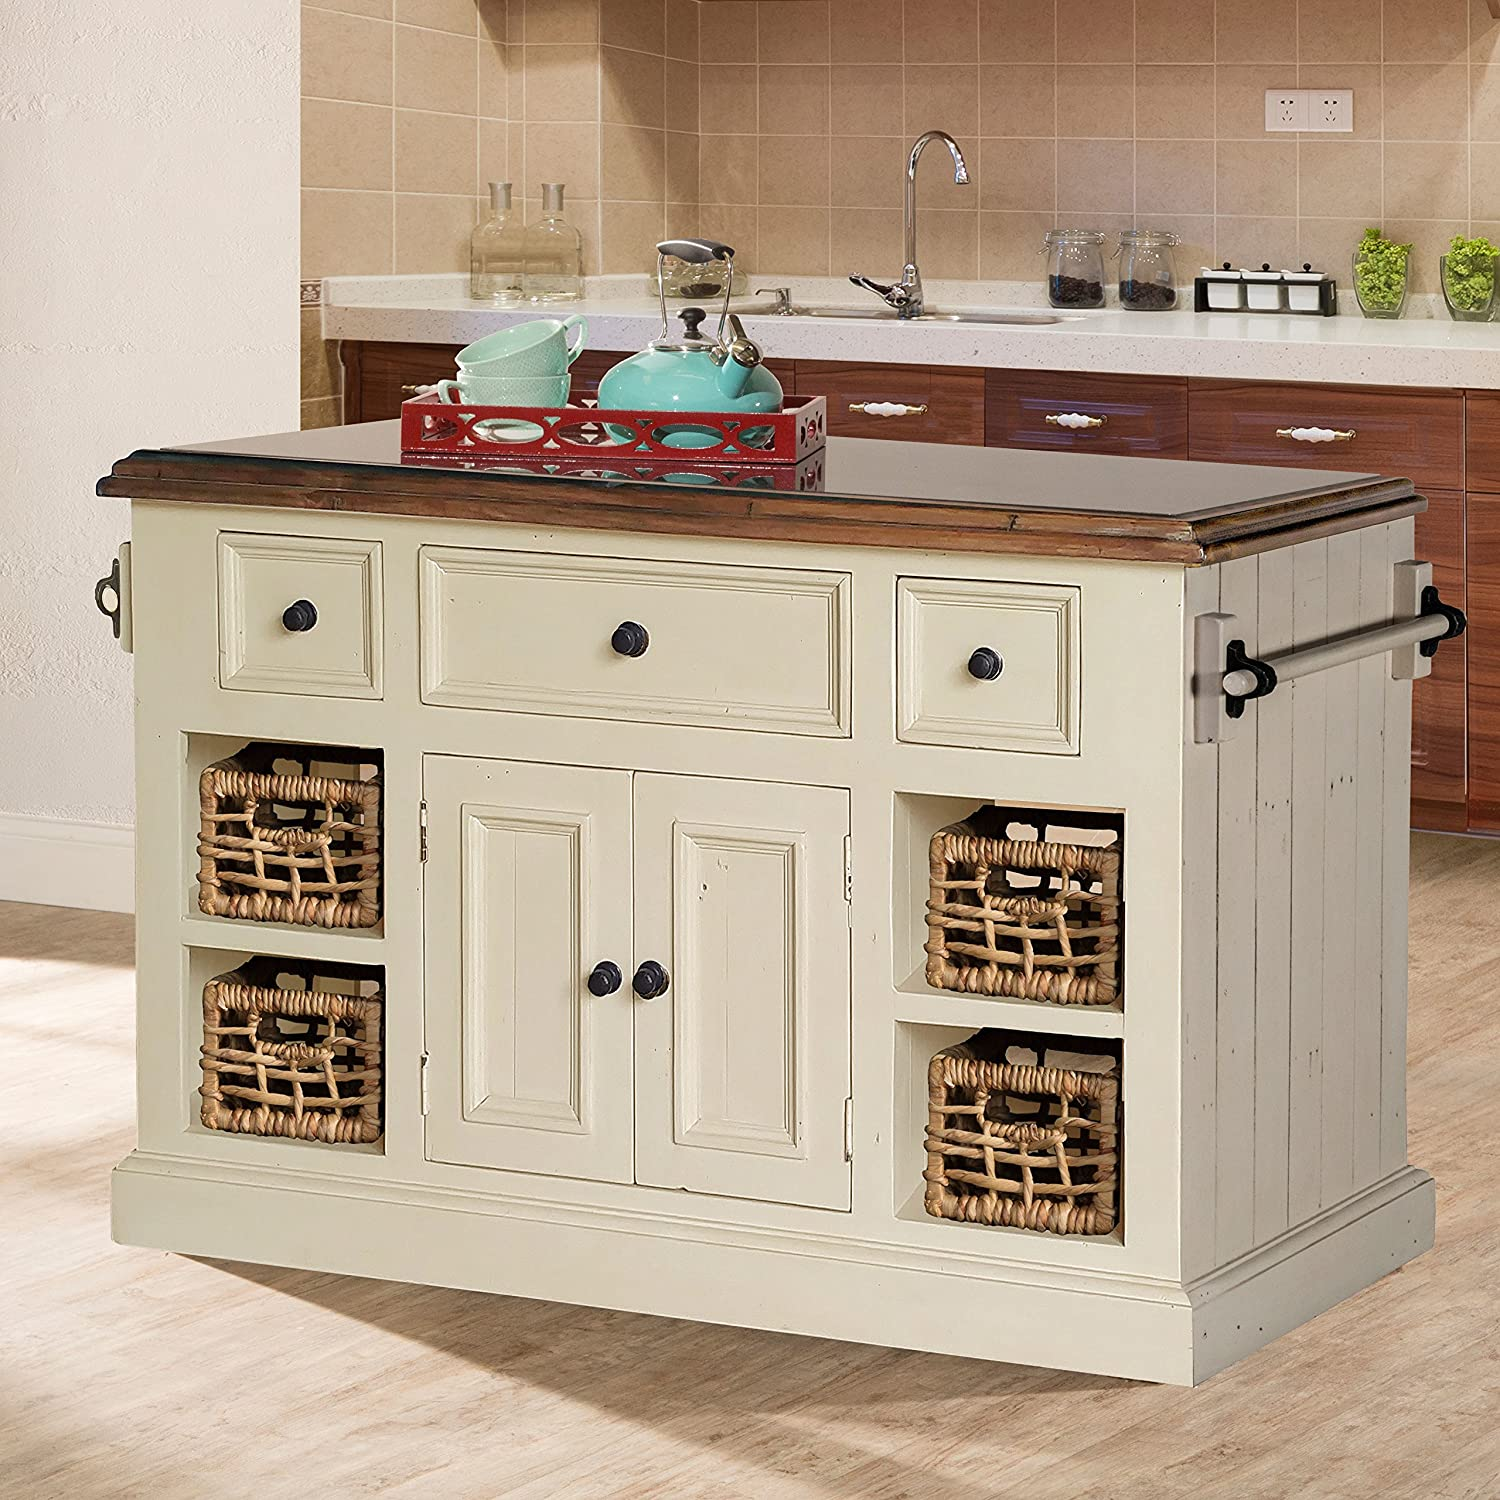 Hillsdale Tuscan Retreat Large Granite Top Kitchen Island in White